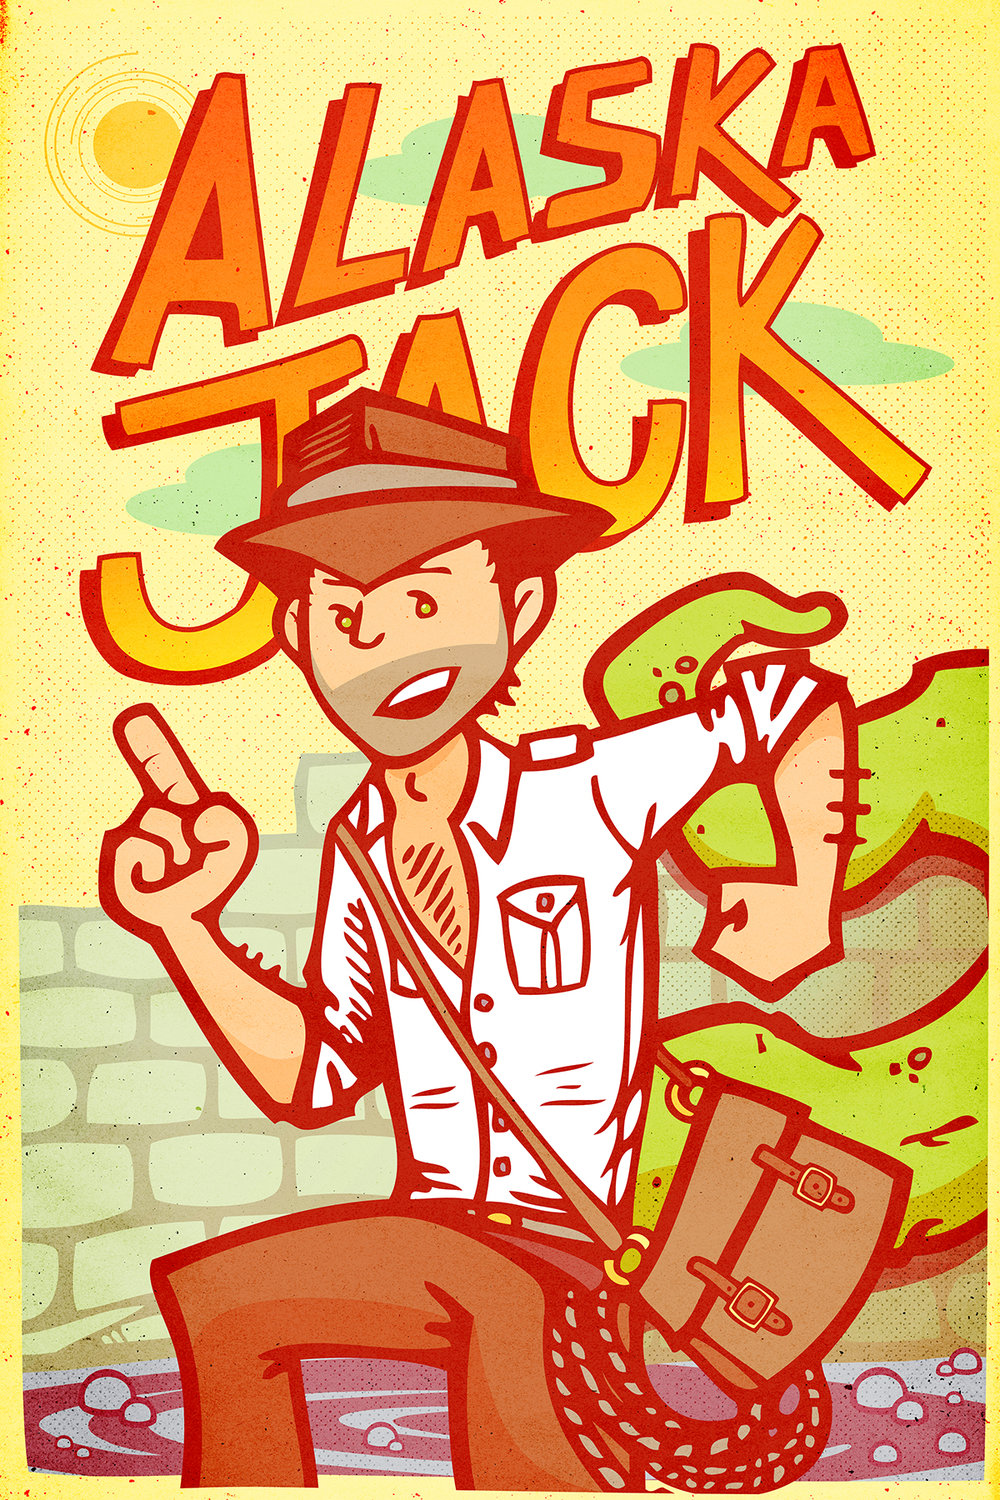 AlaskaJack New Poster Small.jpg